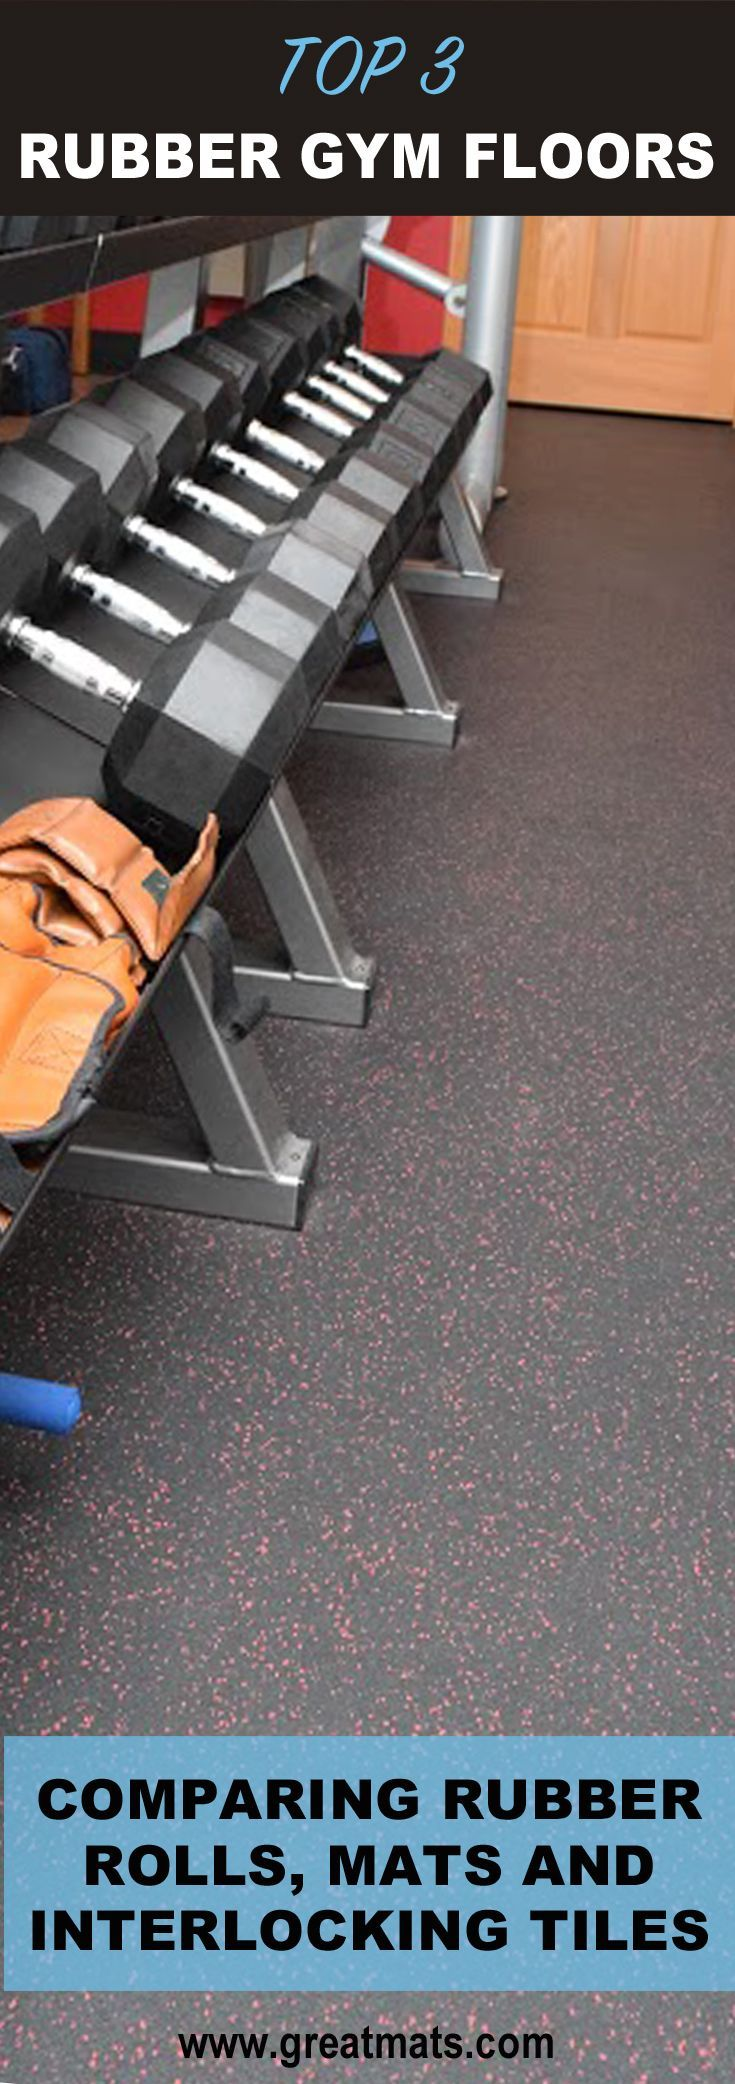 Rubber Impact Mats For Gym Rolls vs Square and